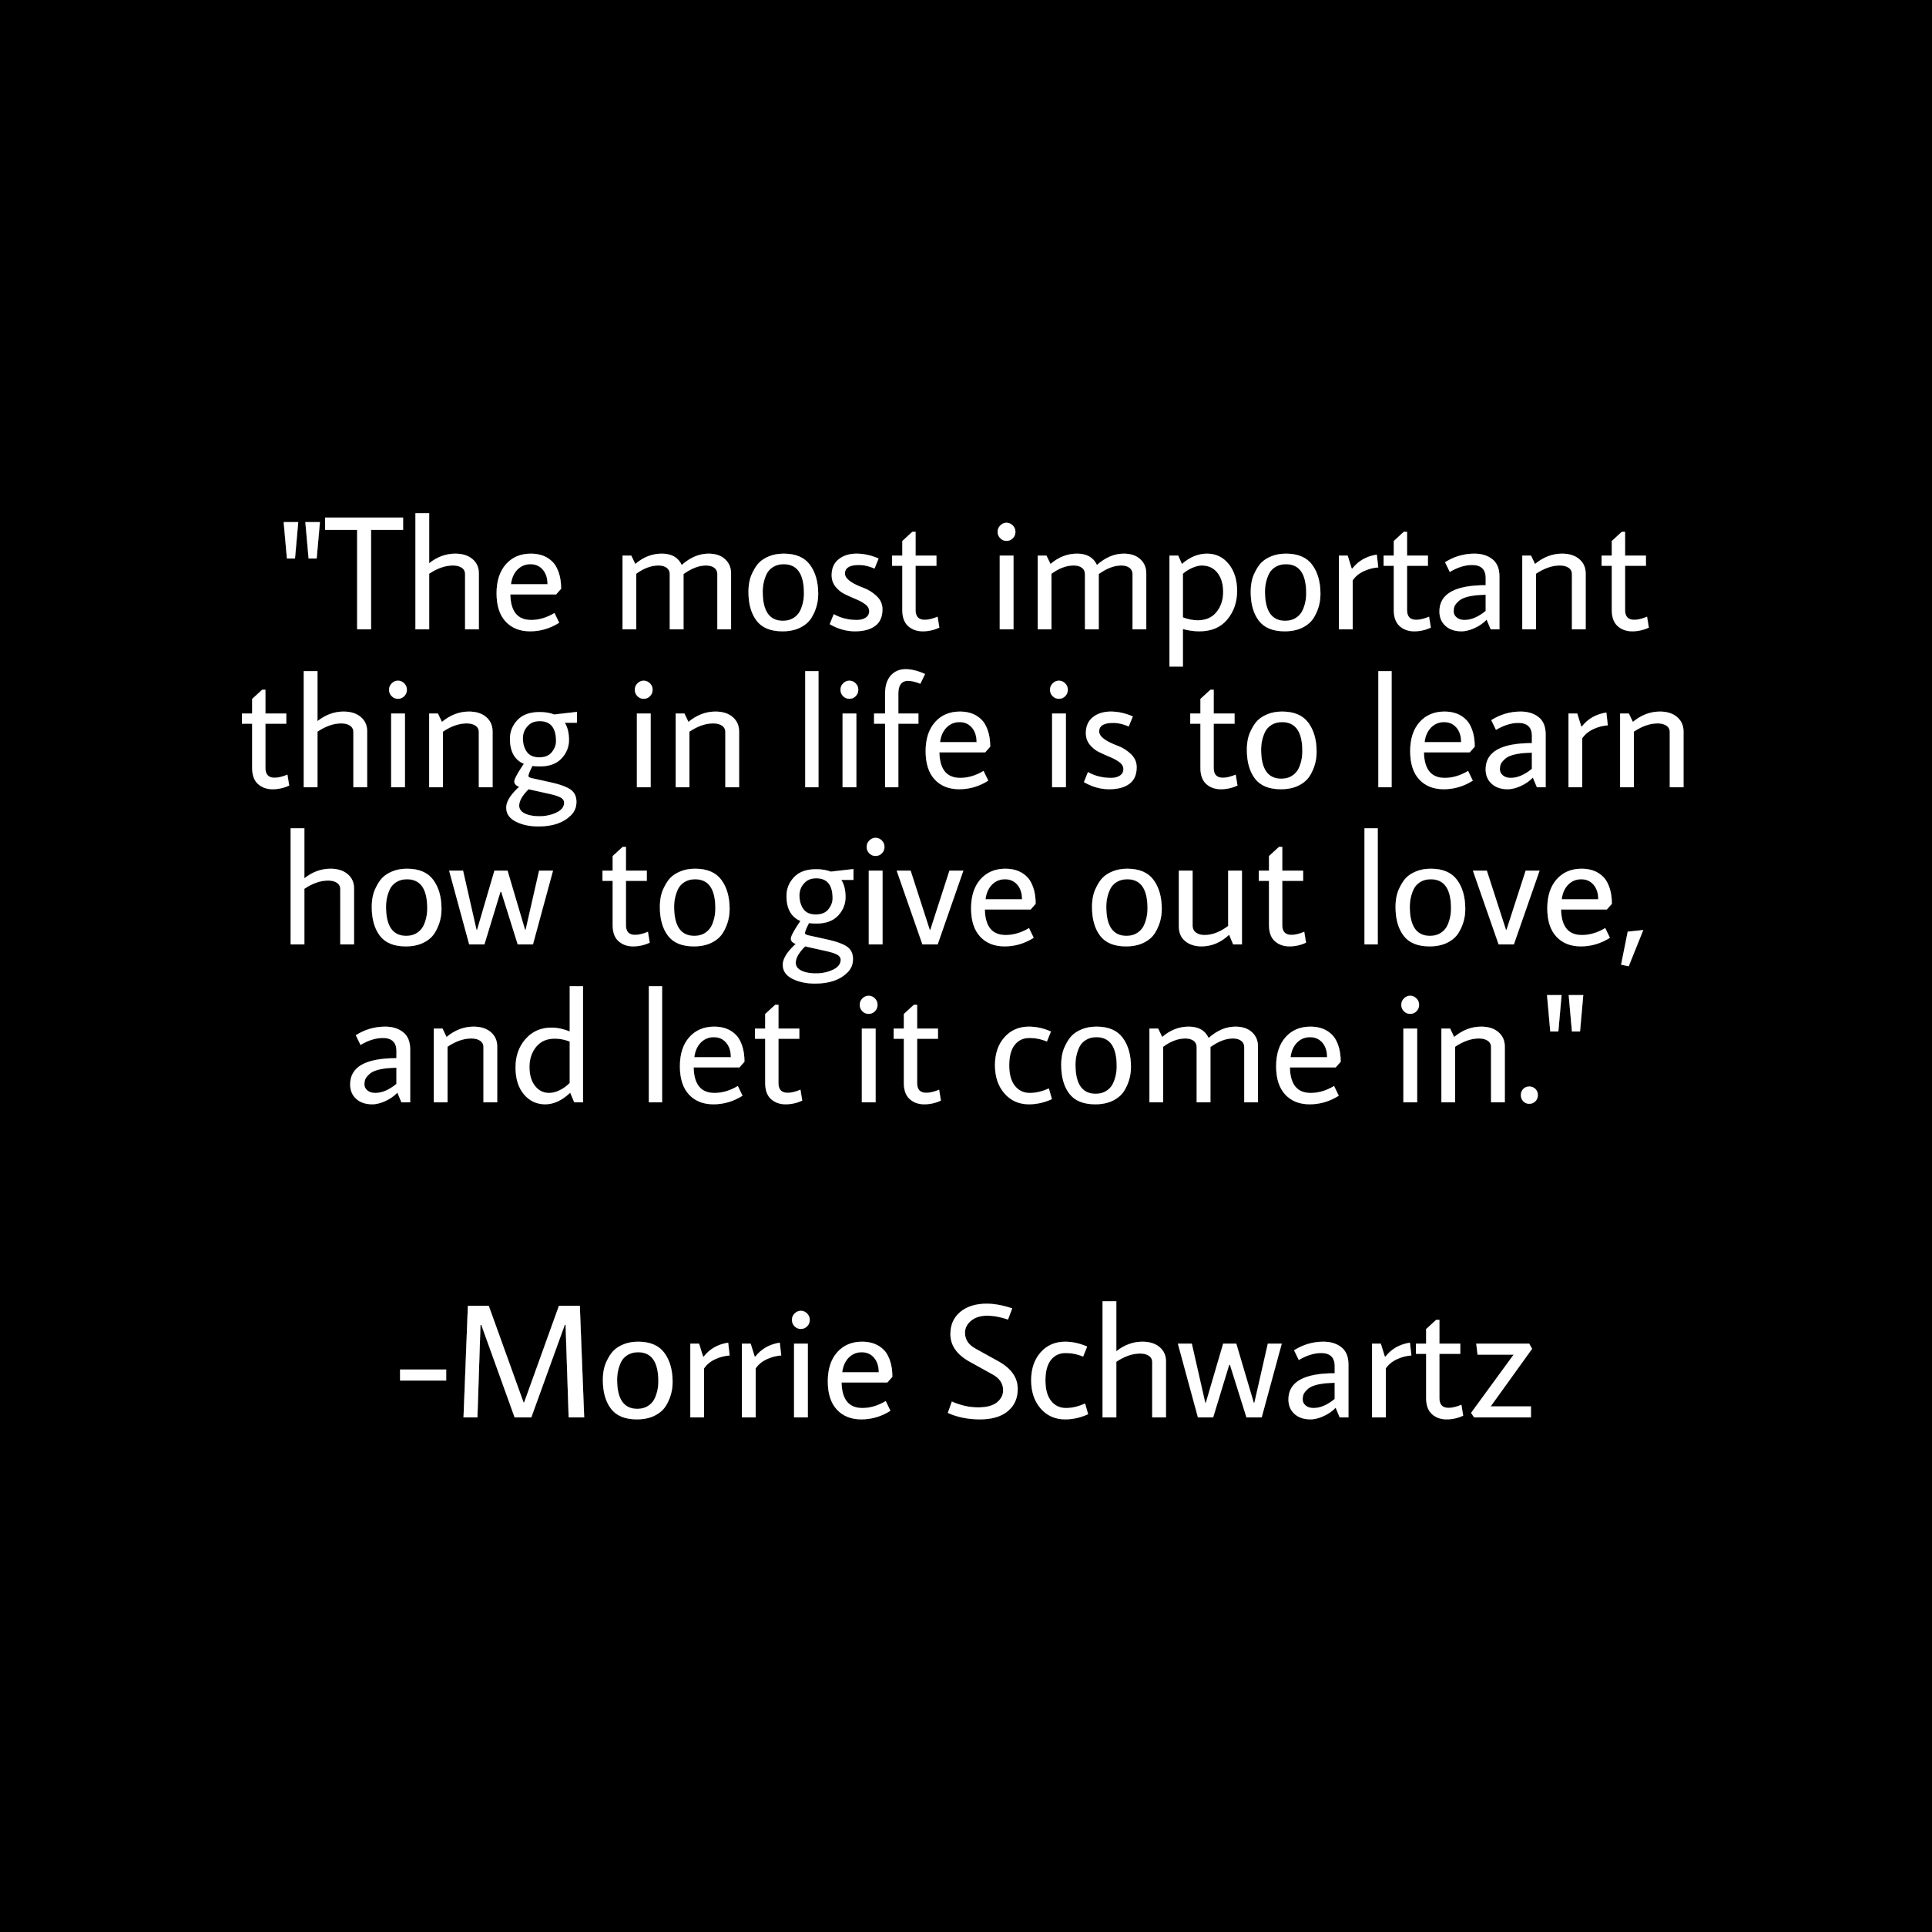 """The most important thing in life is to learn how to give out love, and let it come in."" -Morrie Schwartz [2508×2508]"